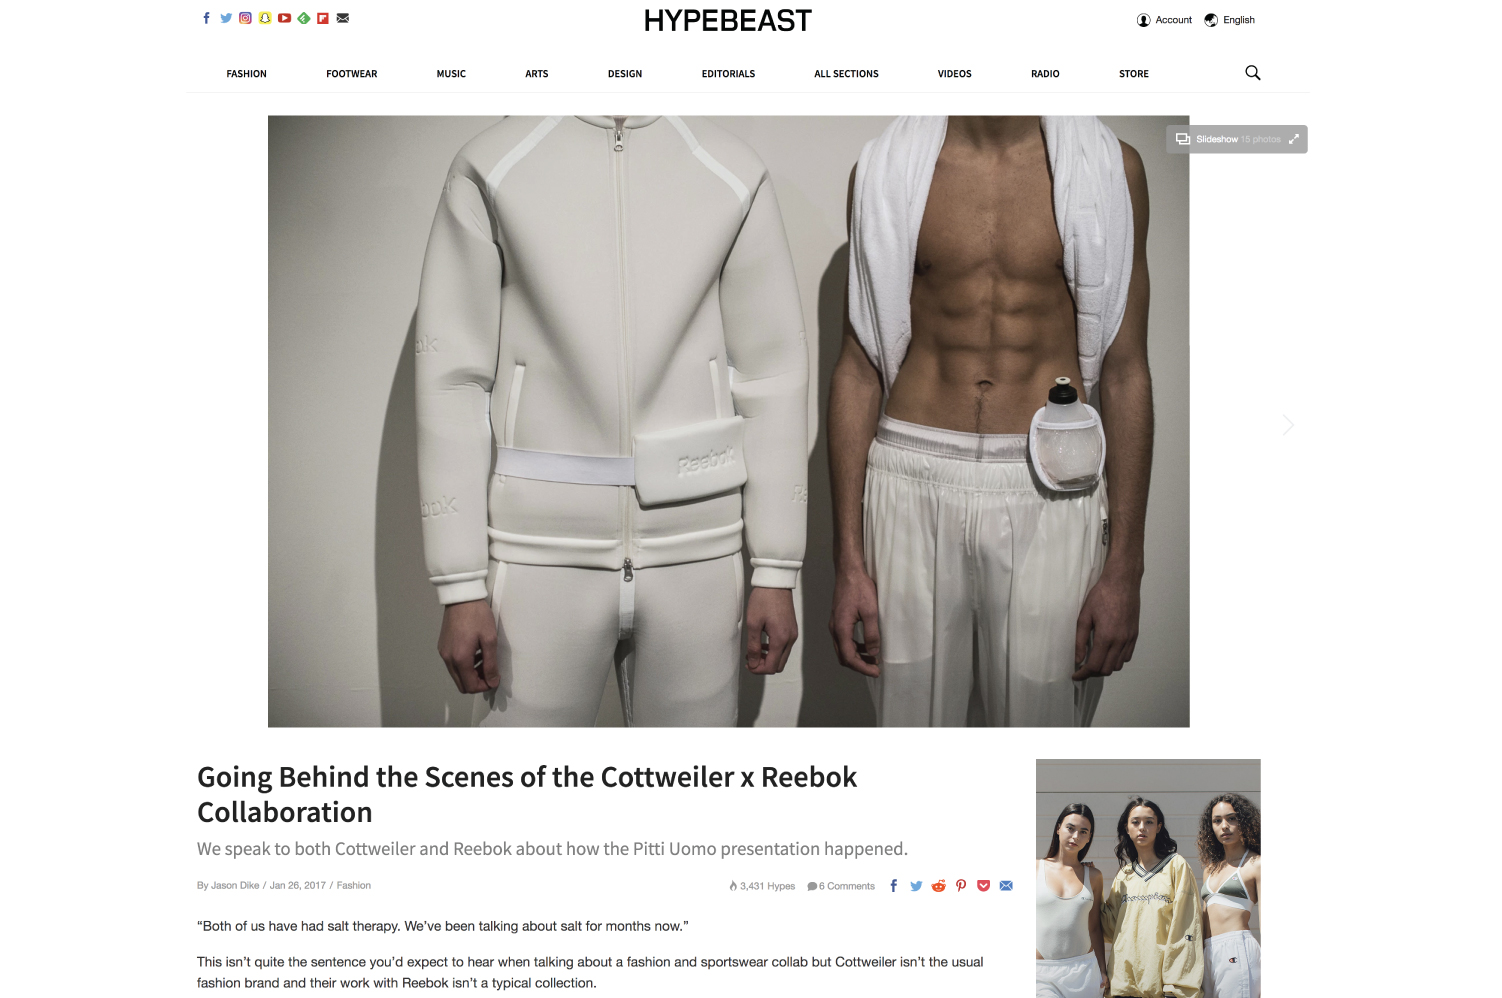 HYPEBEAST | Going Behind the Scenes of the Cottweiler x Reebok Collaboration, by Jason Dike, January 26, 2017